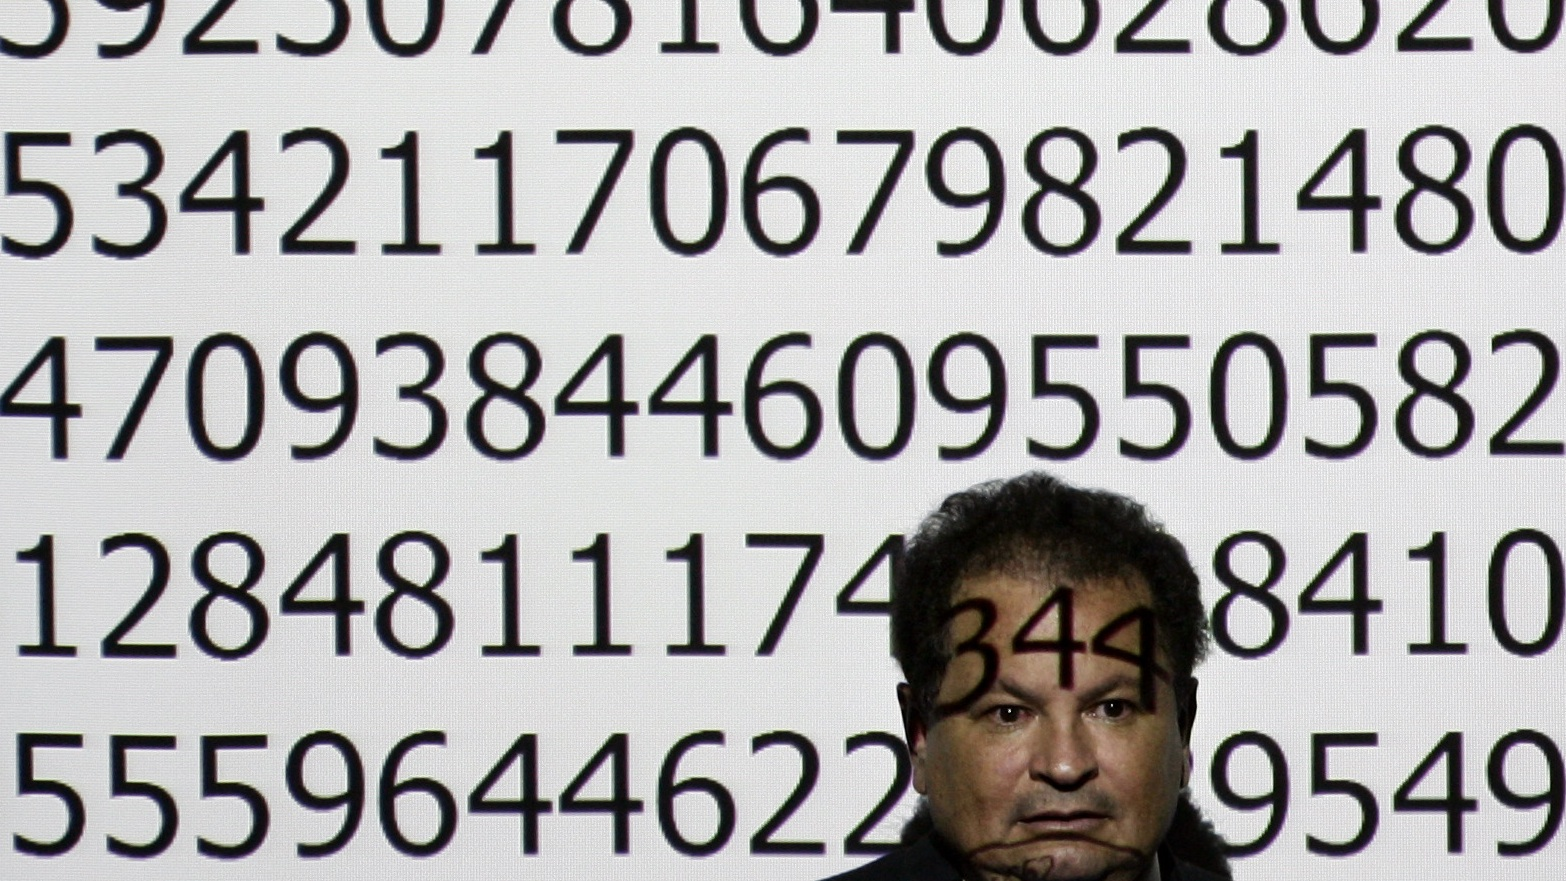 Jaime Garcia Serrano, from Colombia, poses before starting an exhibition of mathematics  and memory skills in front  of a screen with the number pi at the University Computense of Madrid, Thursday, Jan. 24, 2008. Garcia Serrano recited by memory and for hours, random sections of the number pi taken to 150.000 decimal places. (AP Photo/Bernat Armangue)